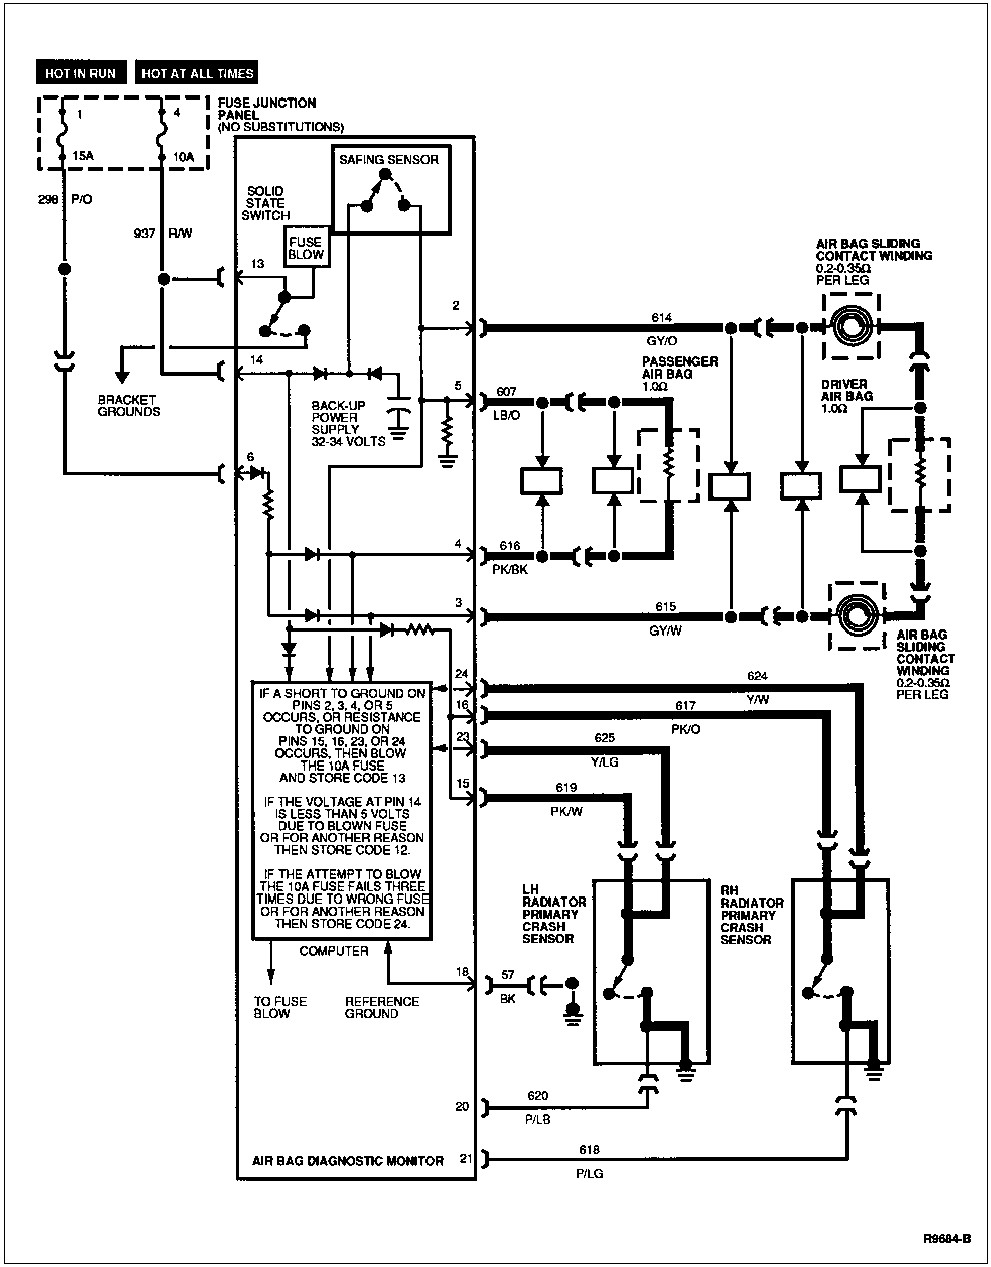 hight resolution of ford mustang airbag code 13 2010 mustang fuse box location 1966 mustang diagram